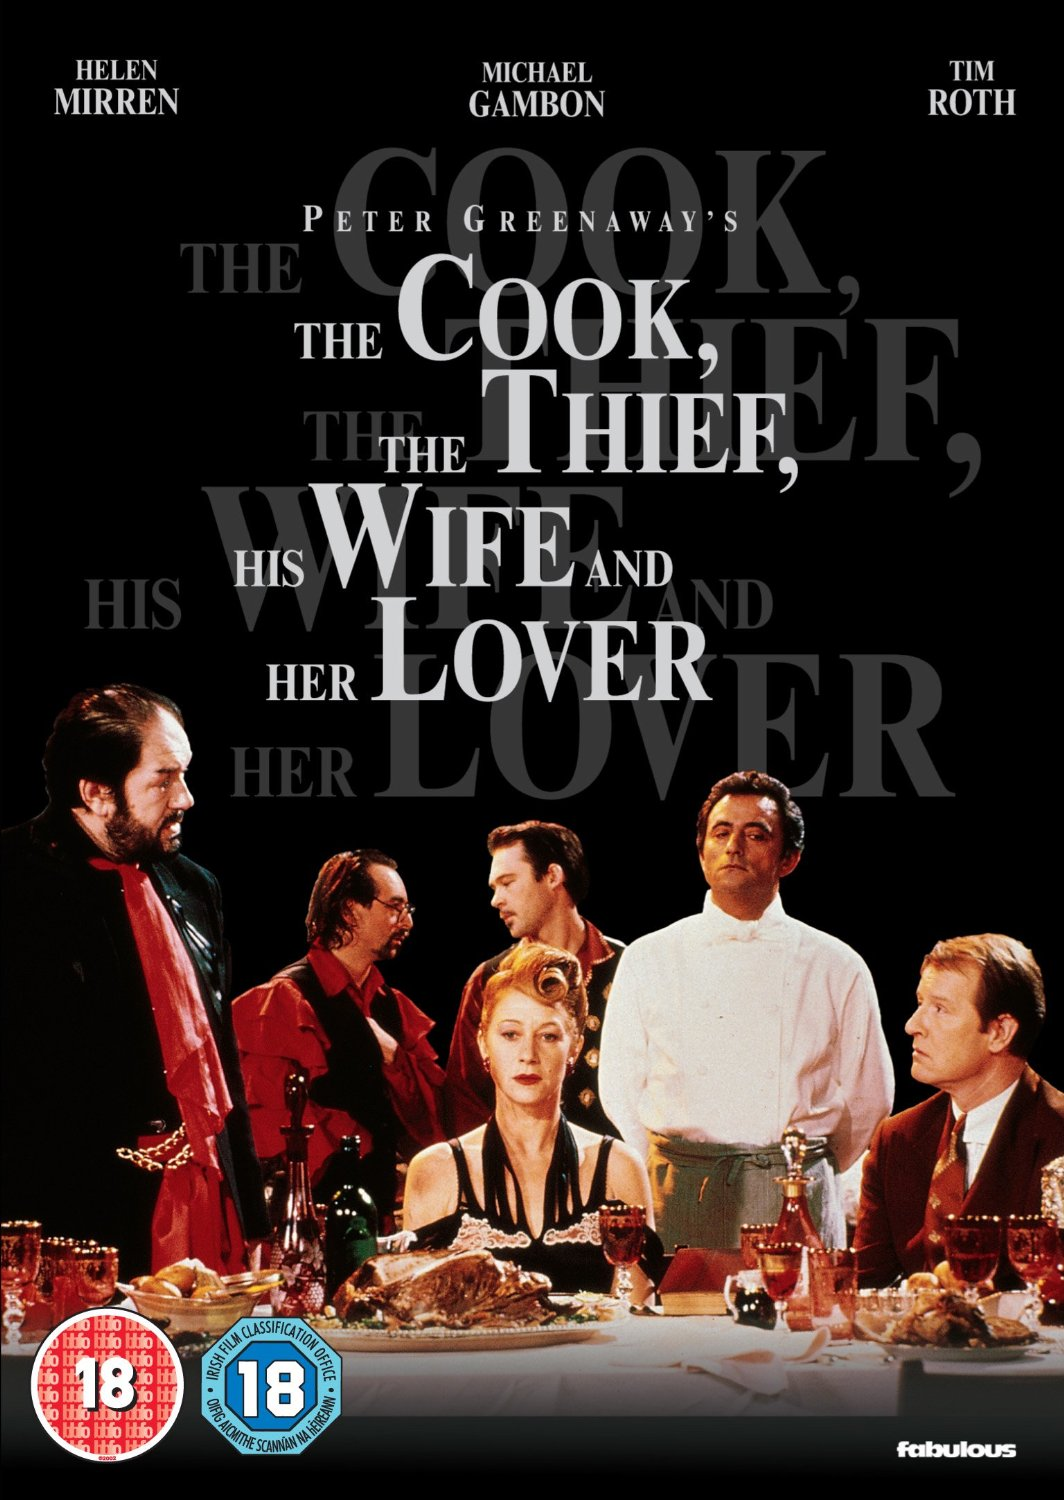 an analysis of the film the cook the thief his wife and her lover by peter greenaway The cook, the thief, his wife & her lover is a 1989 british-french romantic black comedy crime drama film written and directed by peter greenaway, starring richard.